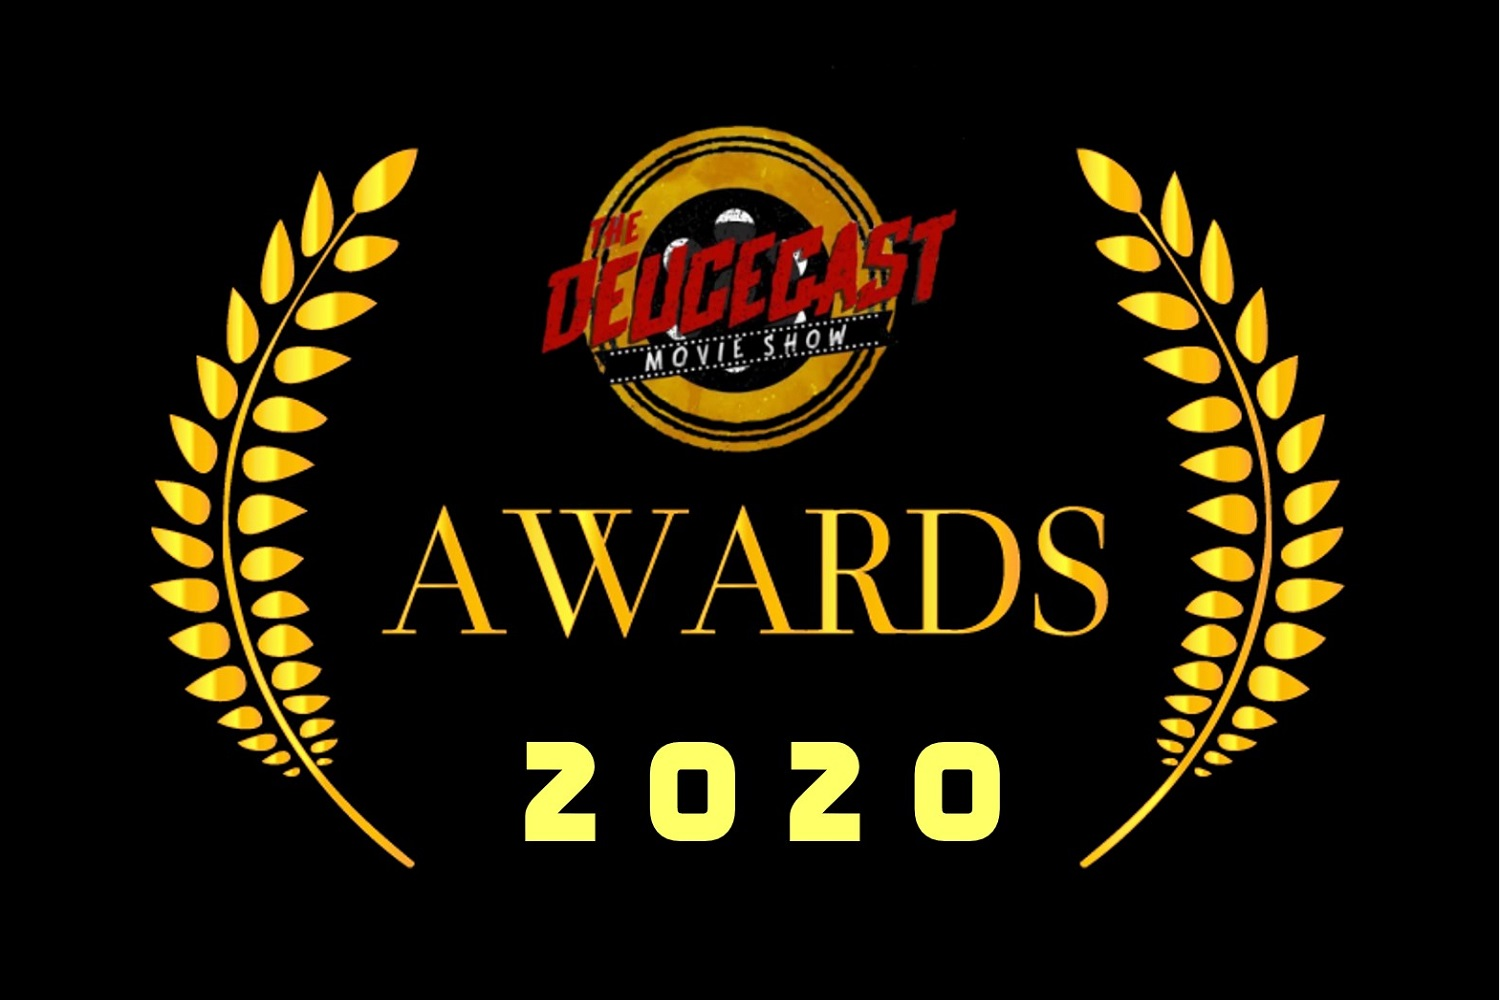 The Deucecast Movie Show #422: The 2020 Deucie Awards and 2019 Top 10